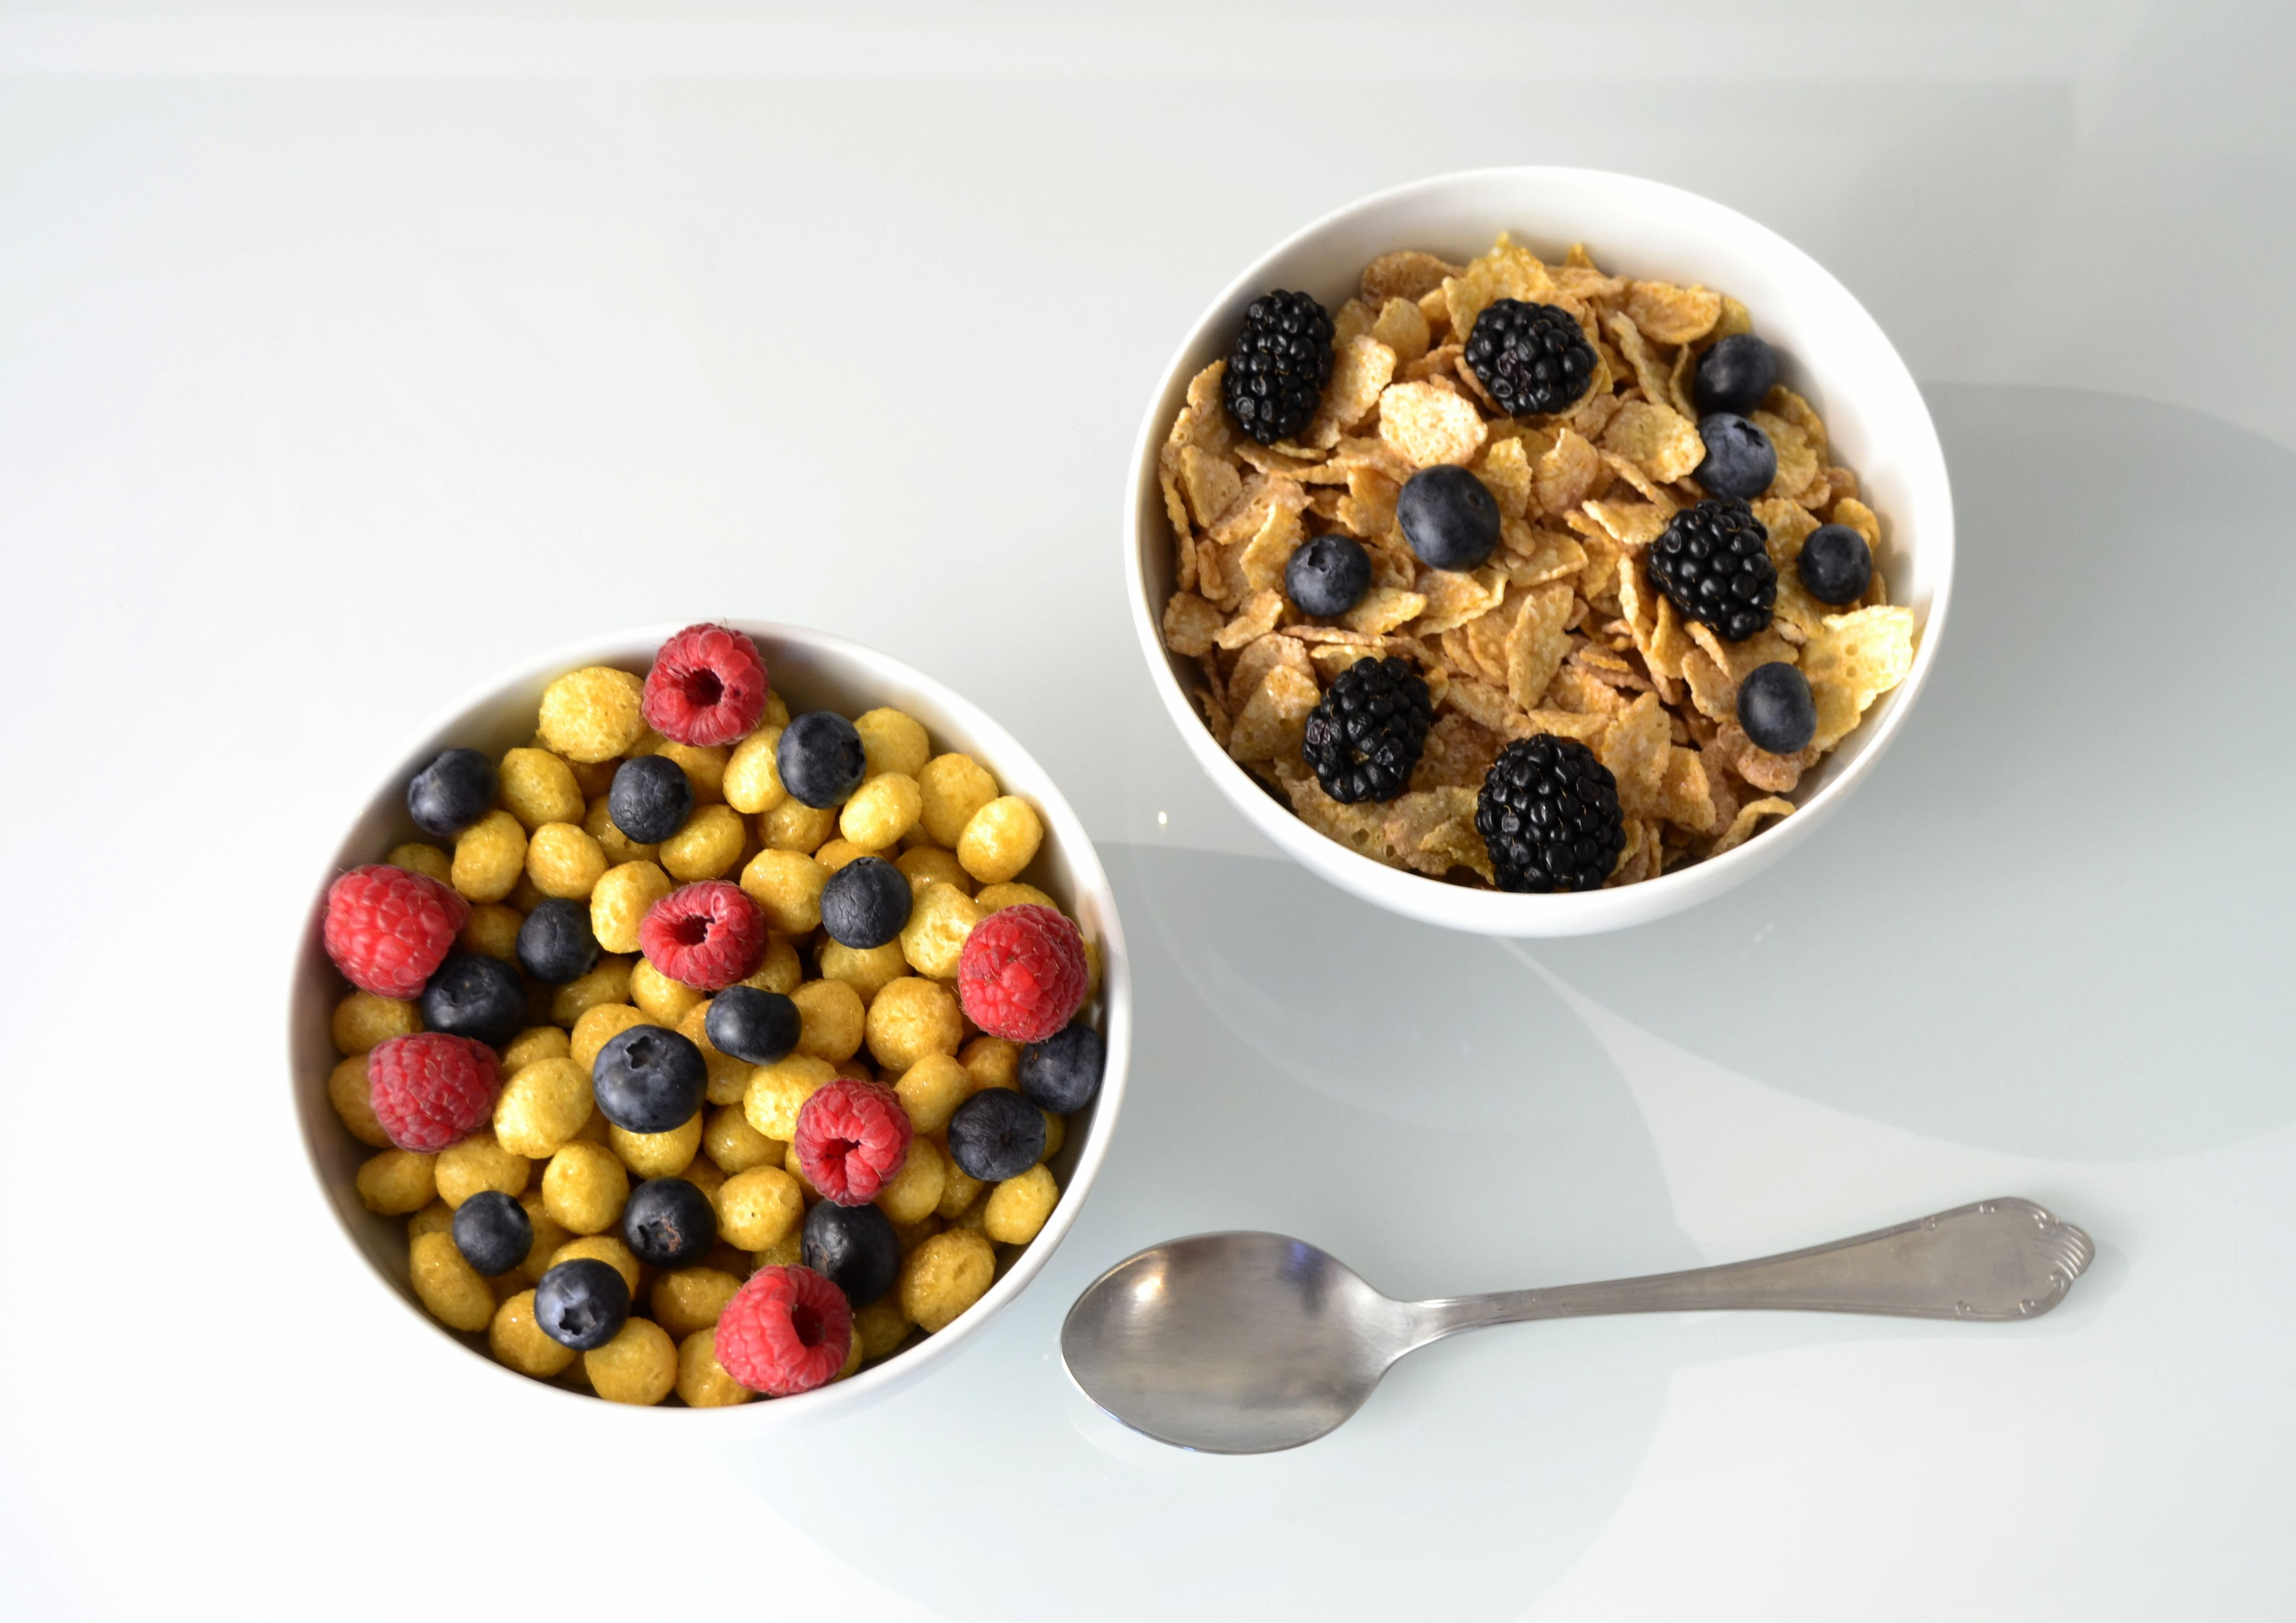 Bowl of cereals with berries